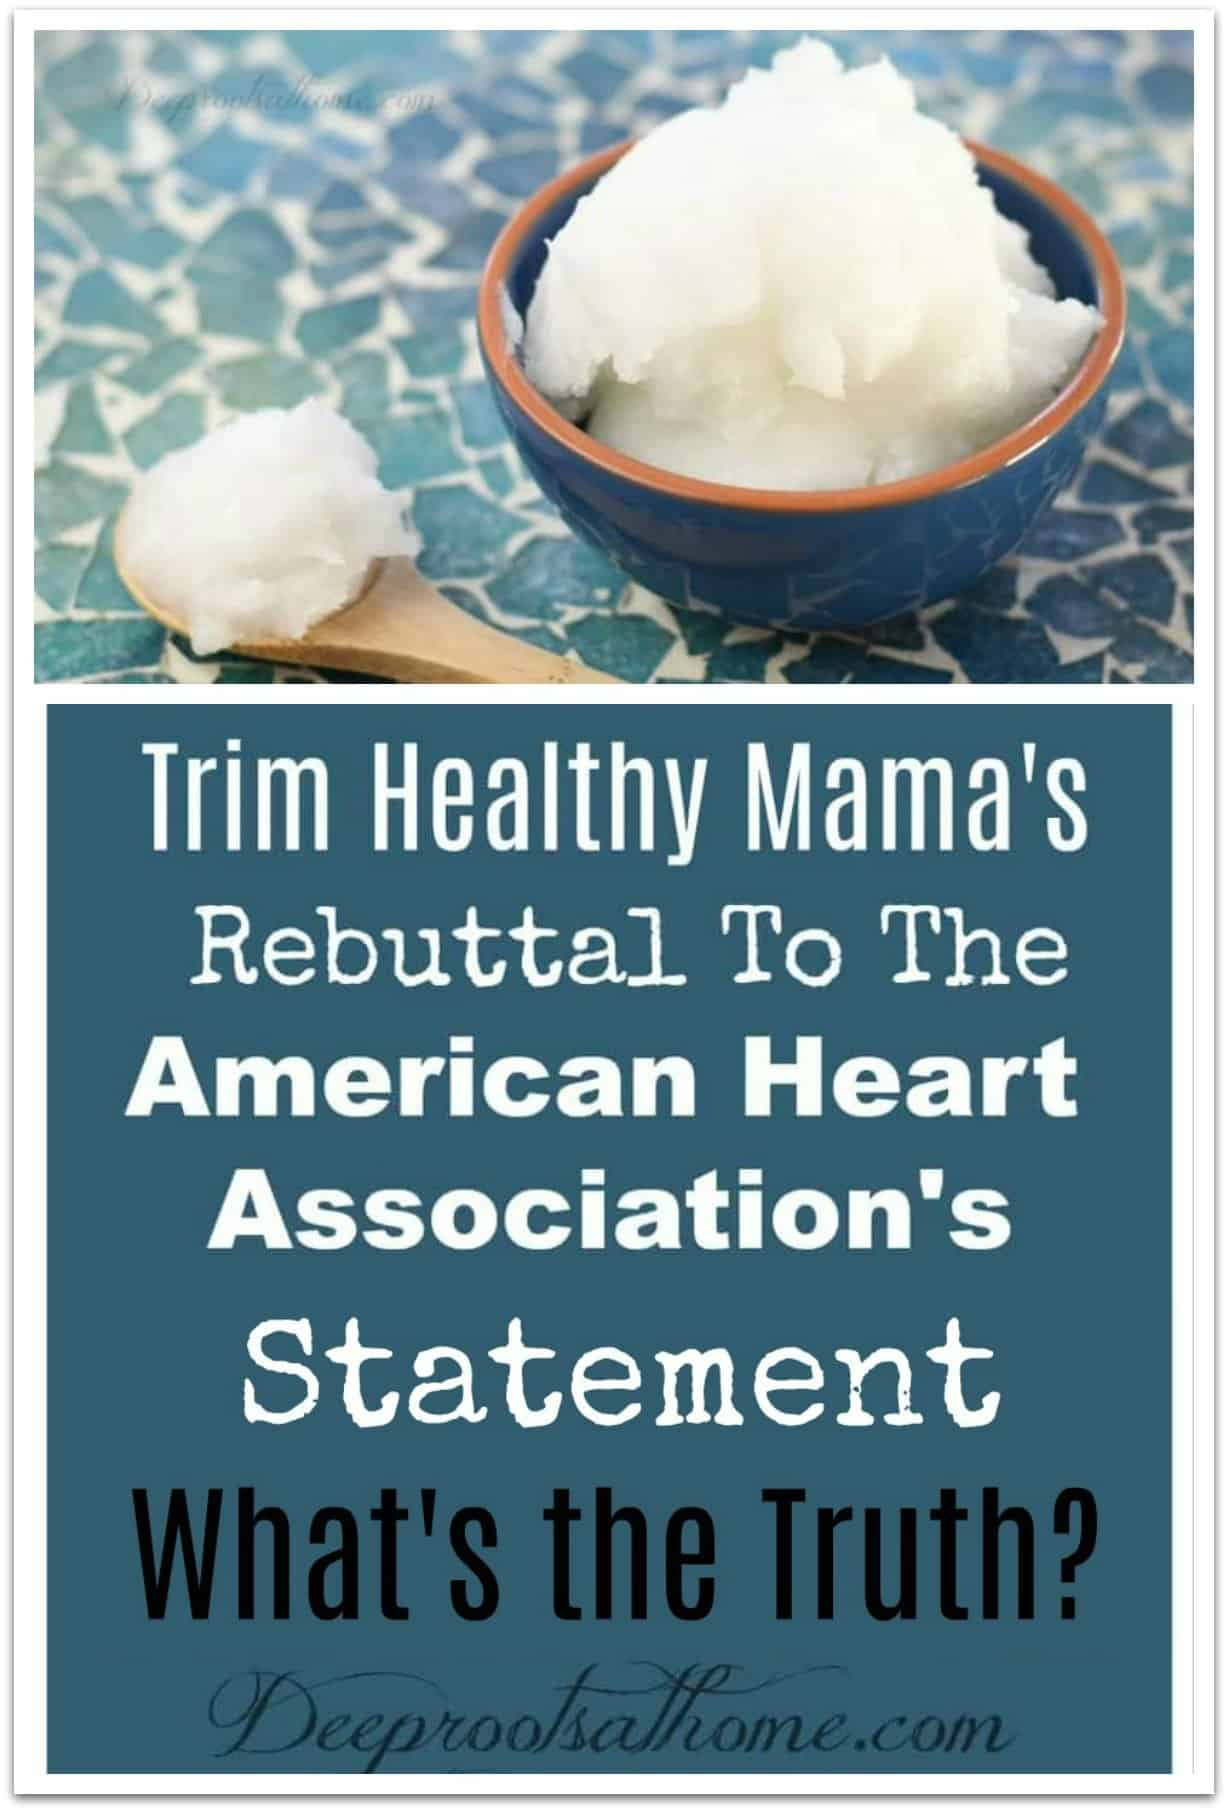 Trim Healthy Mama's Rebuttal To The American Heart Association. a bowl of pure virgin coconut oil